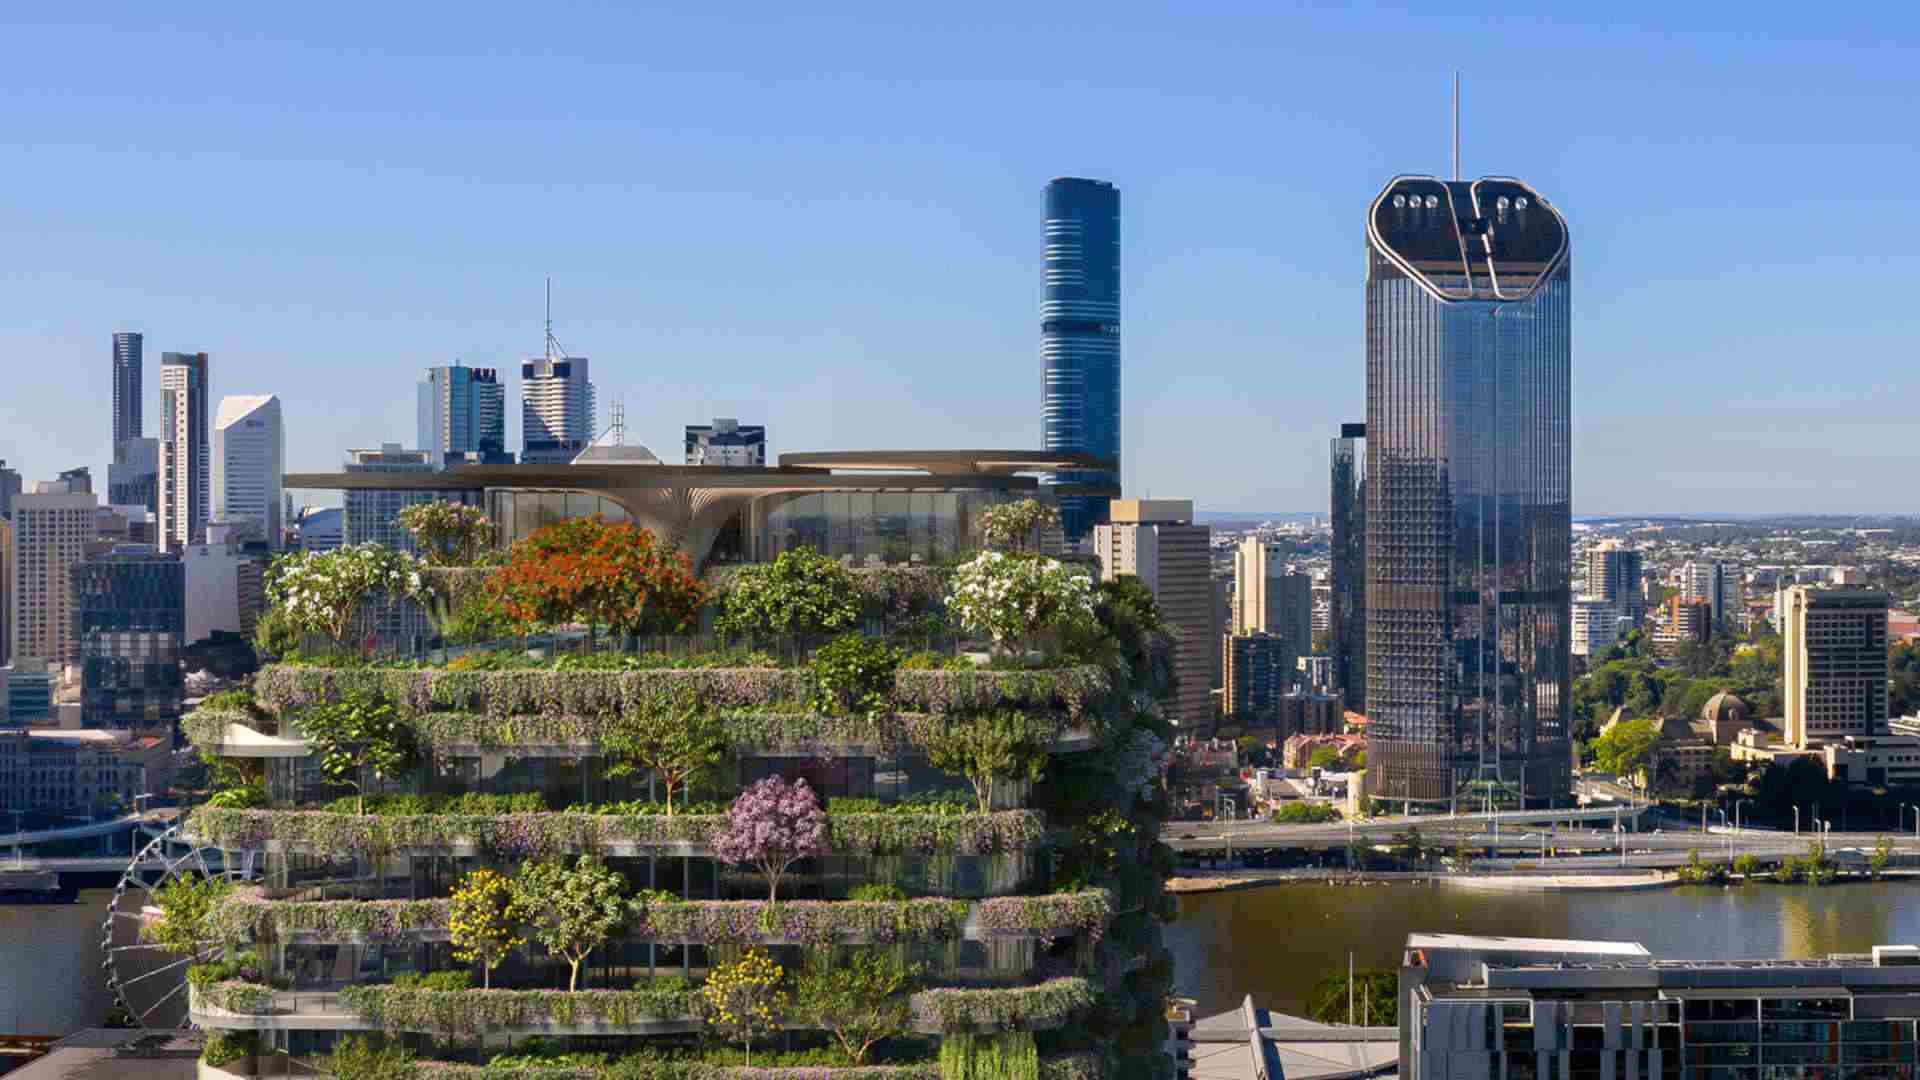 Global spotlight shines on Australia's greenest building